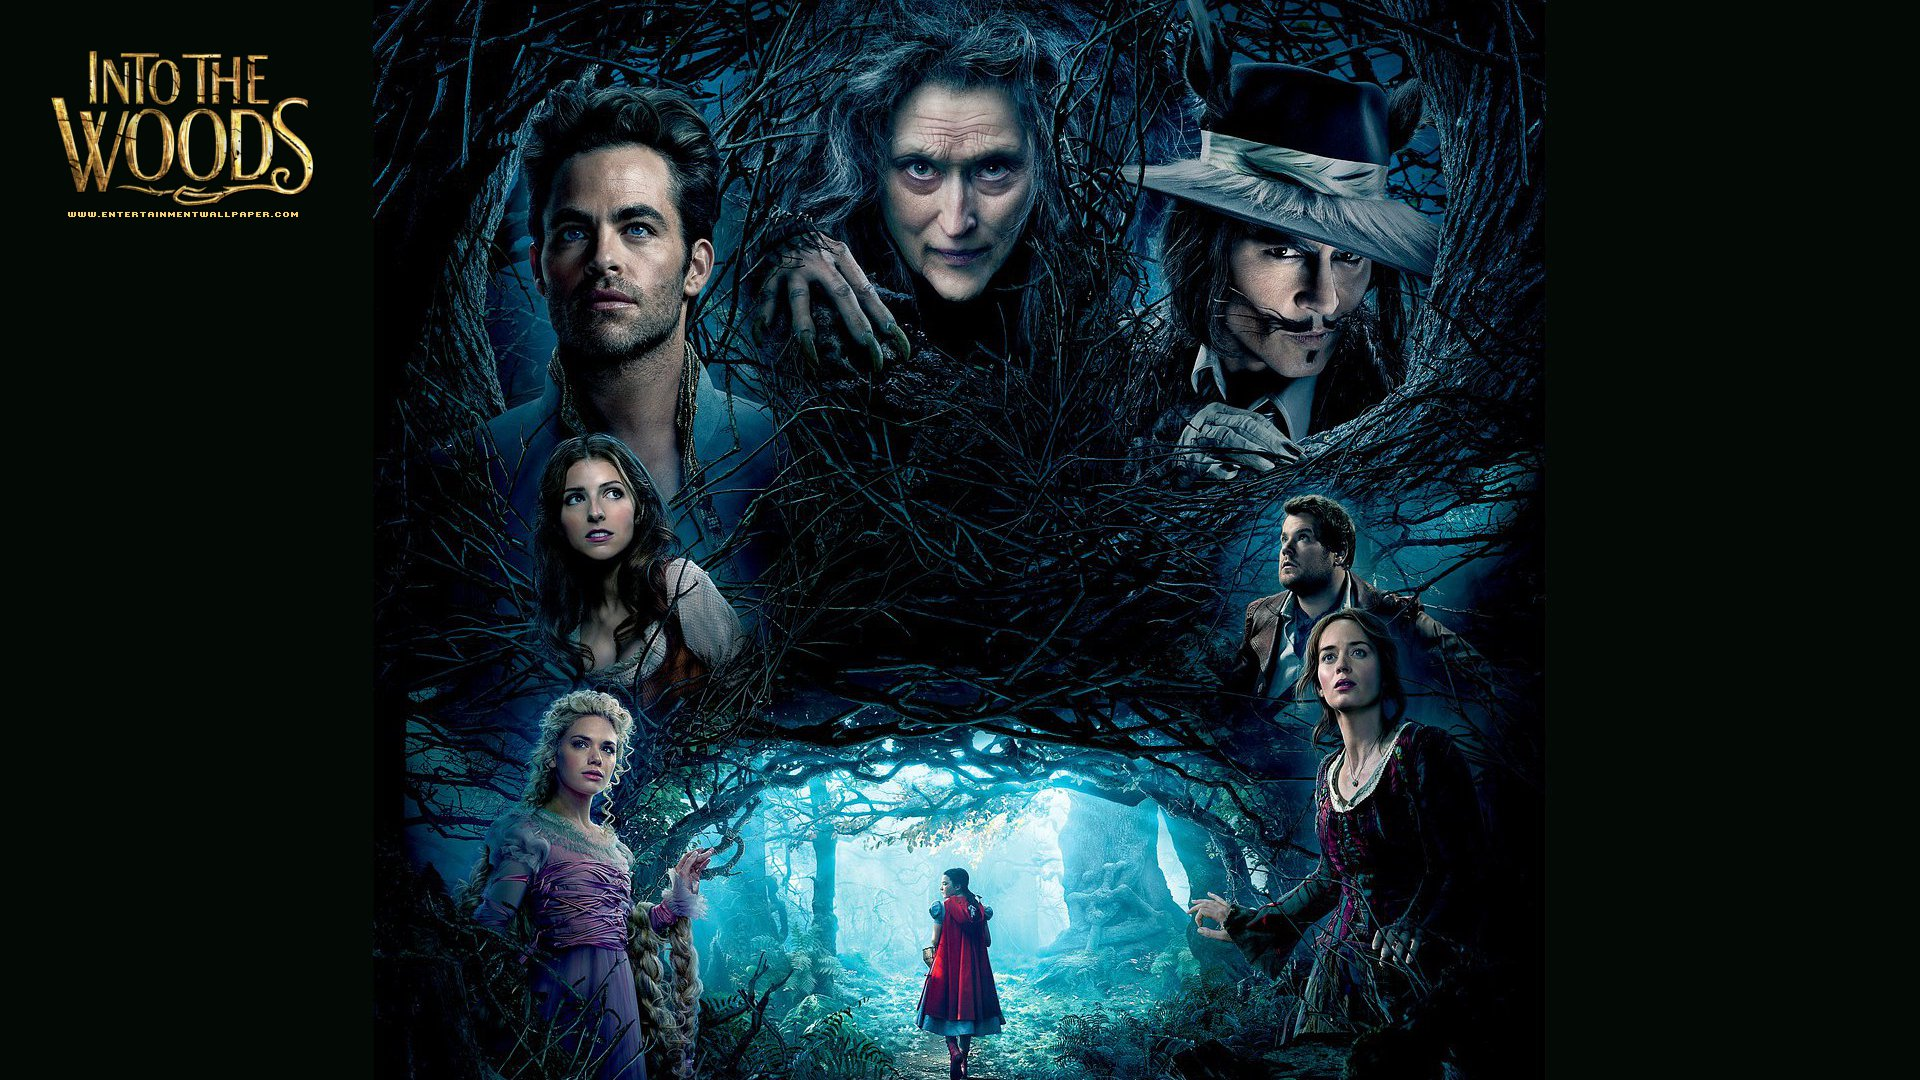 Entertainment Wallpapers.com images Into The Woods HD